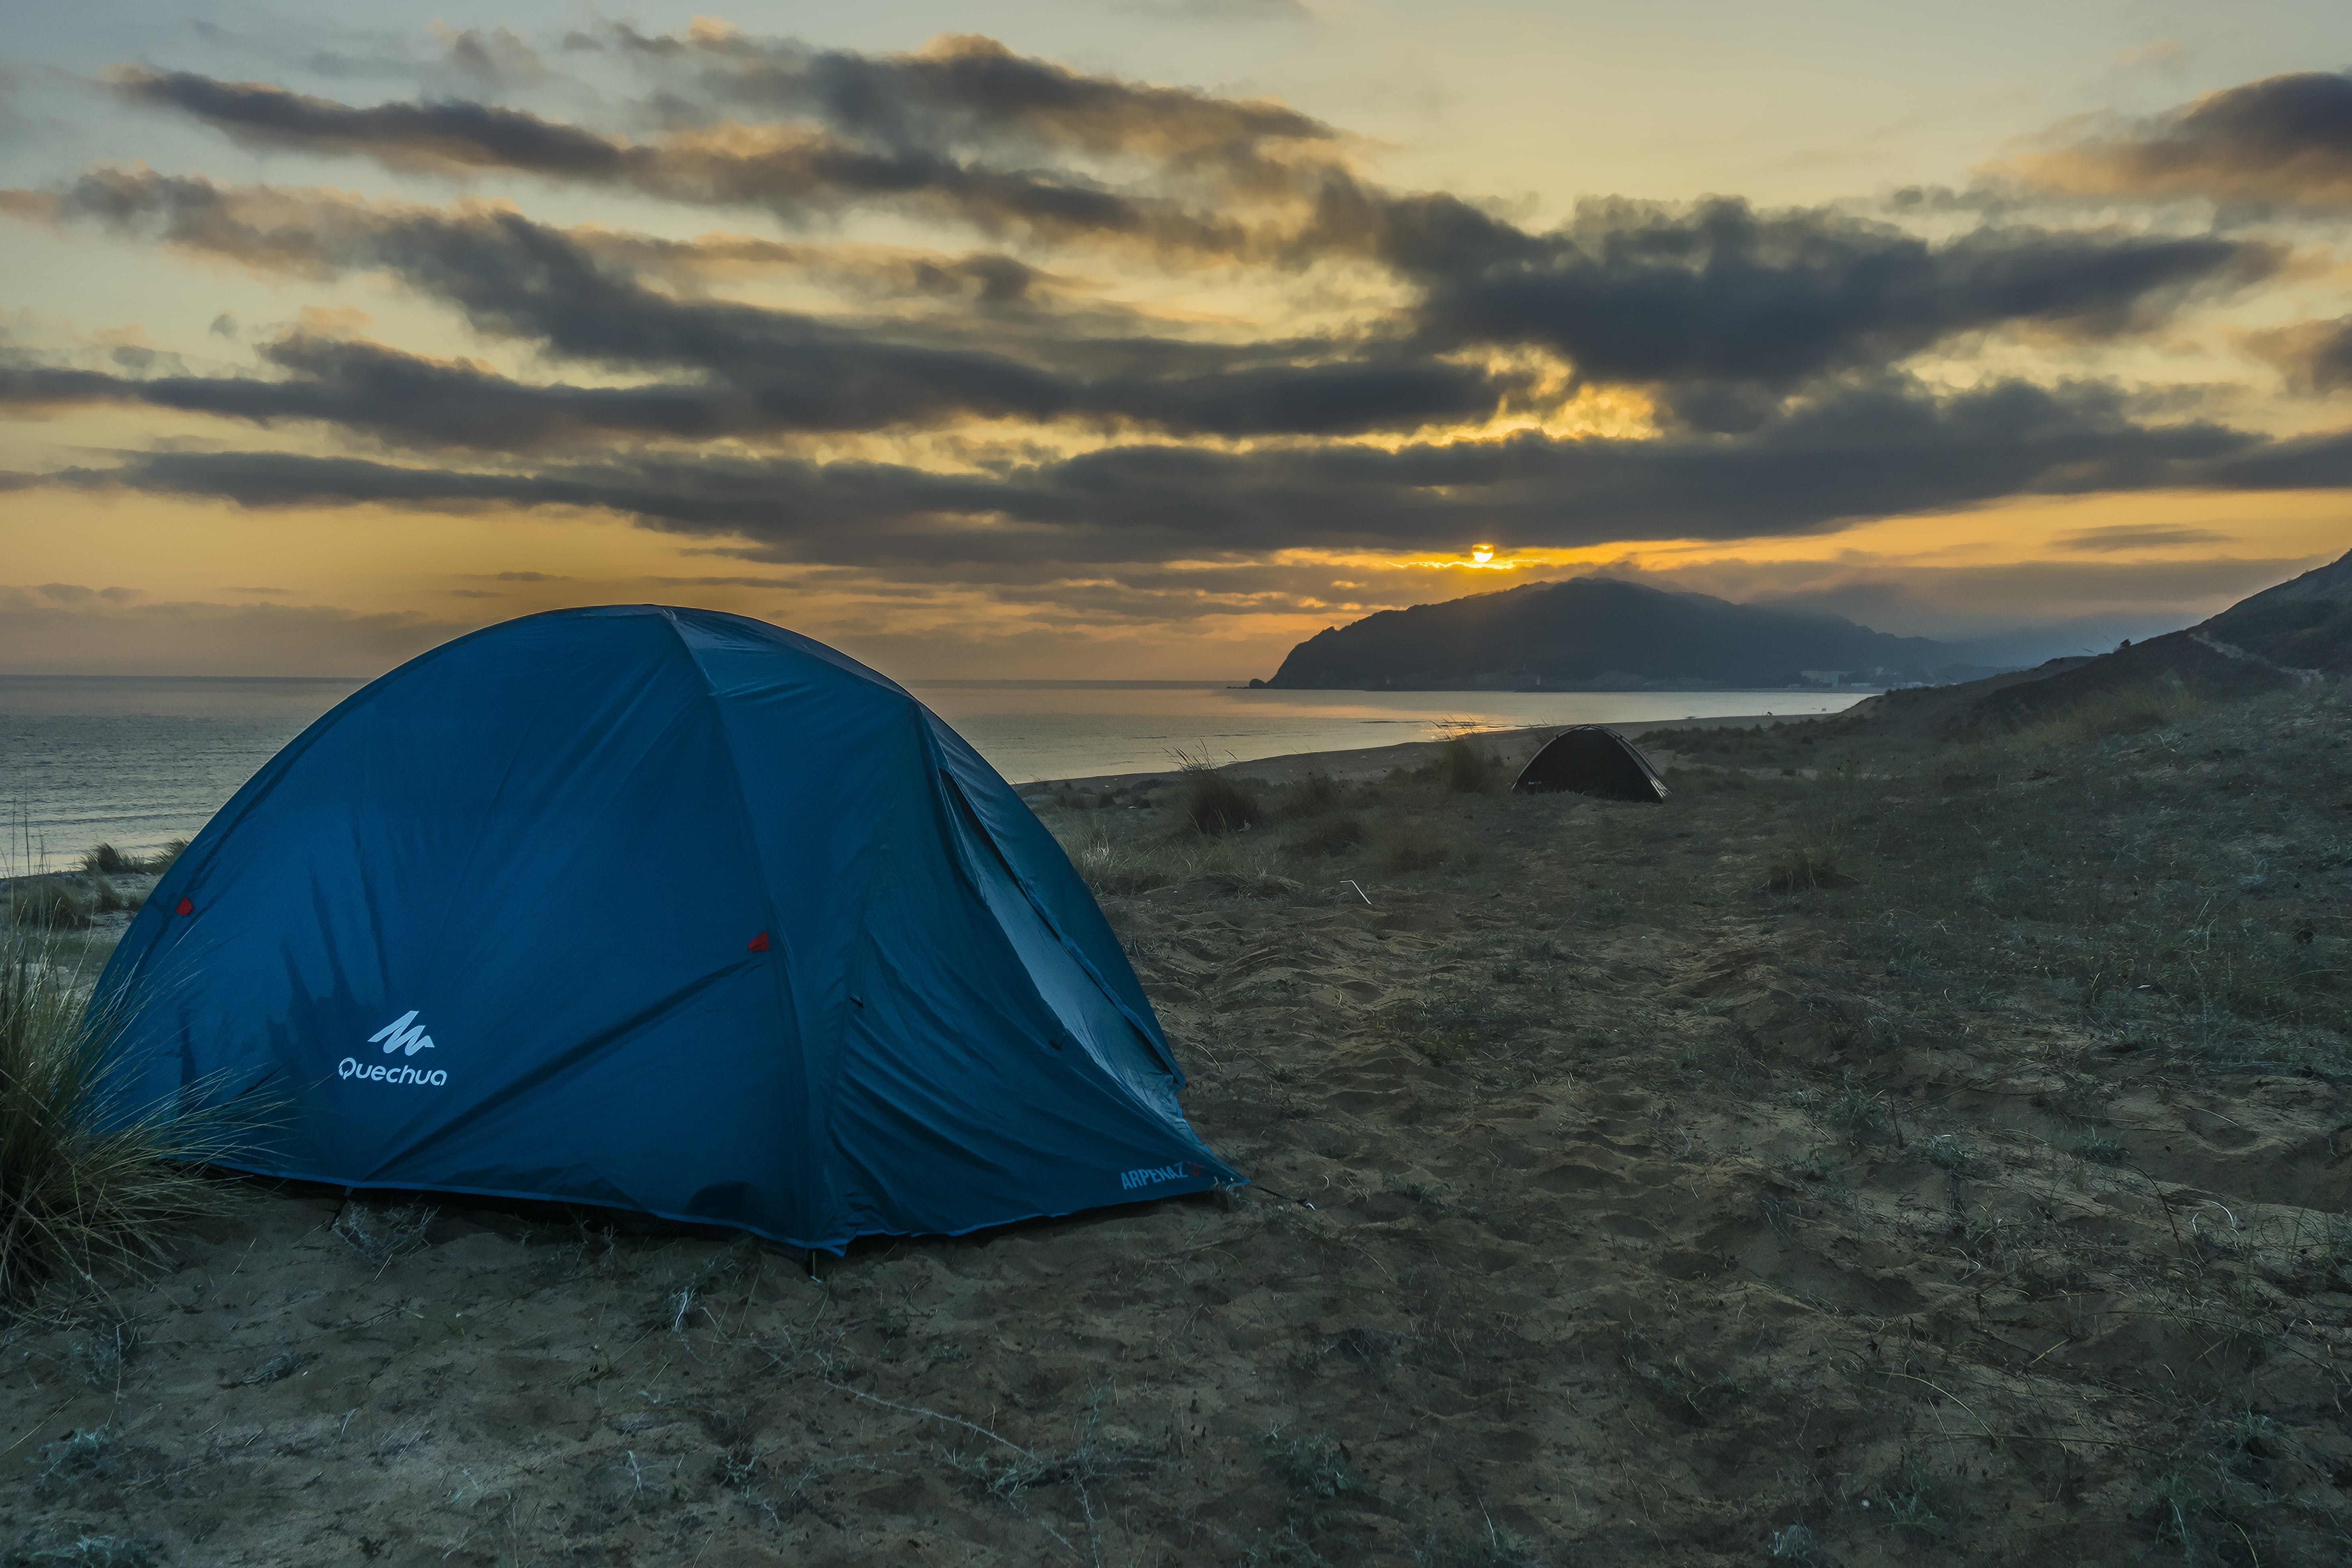 Free stock photo of camping, tent